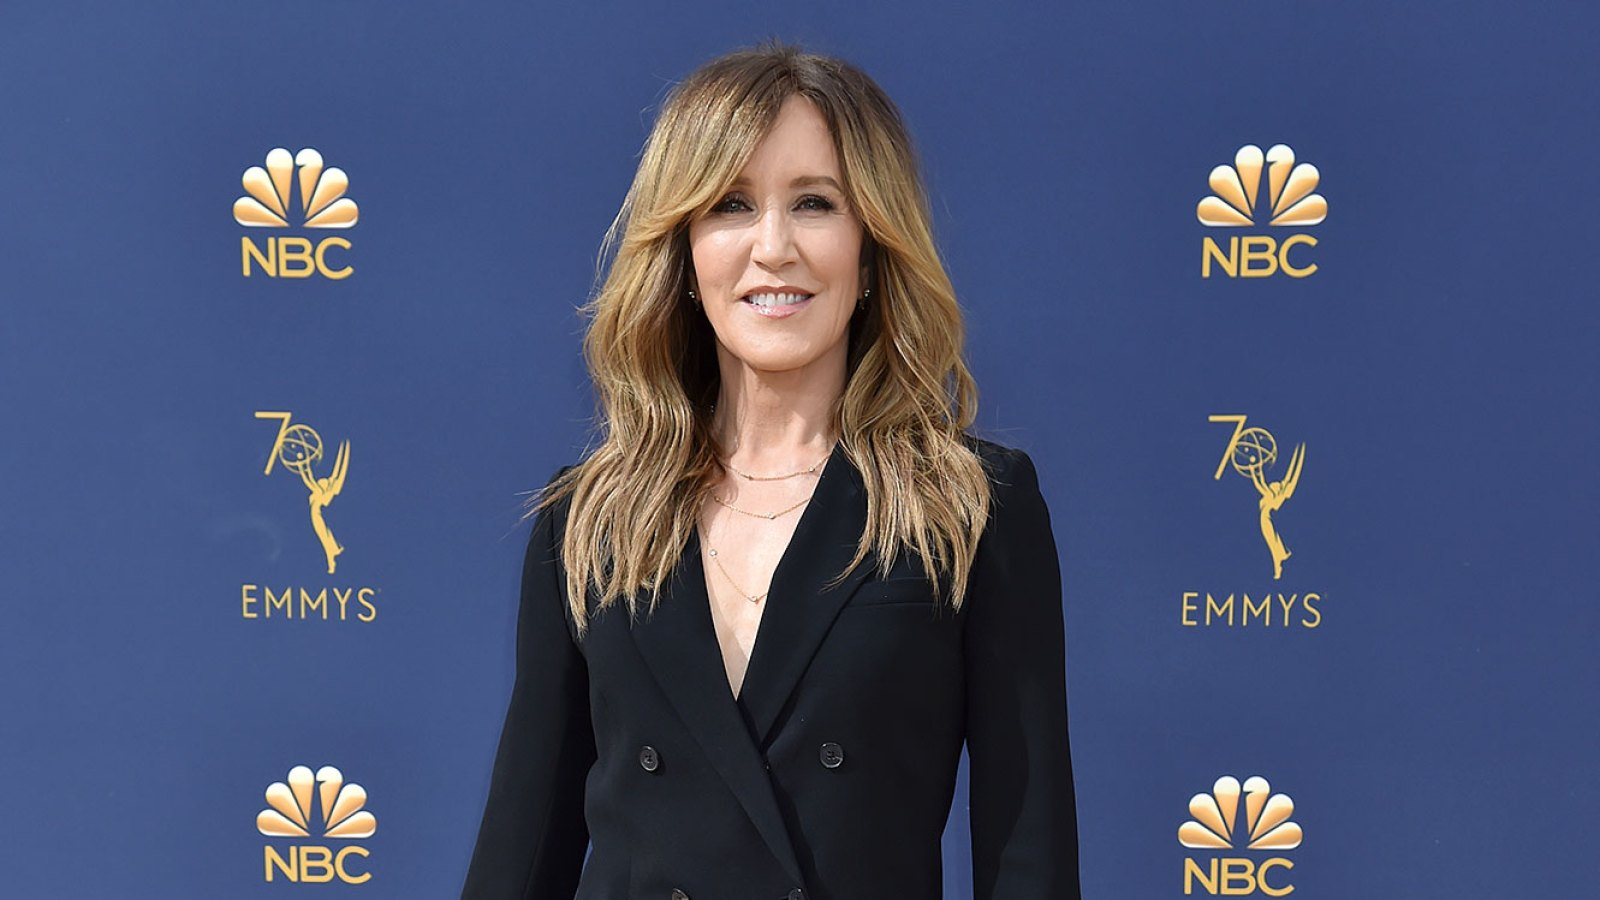 ad4e24be3 Felicity Huffman Appears to Delete Instagram Post About Being a 'Good  Enough' Mom Amid College Admissions Scandal. By Emily Marcus